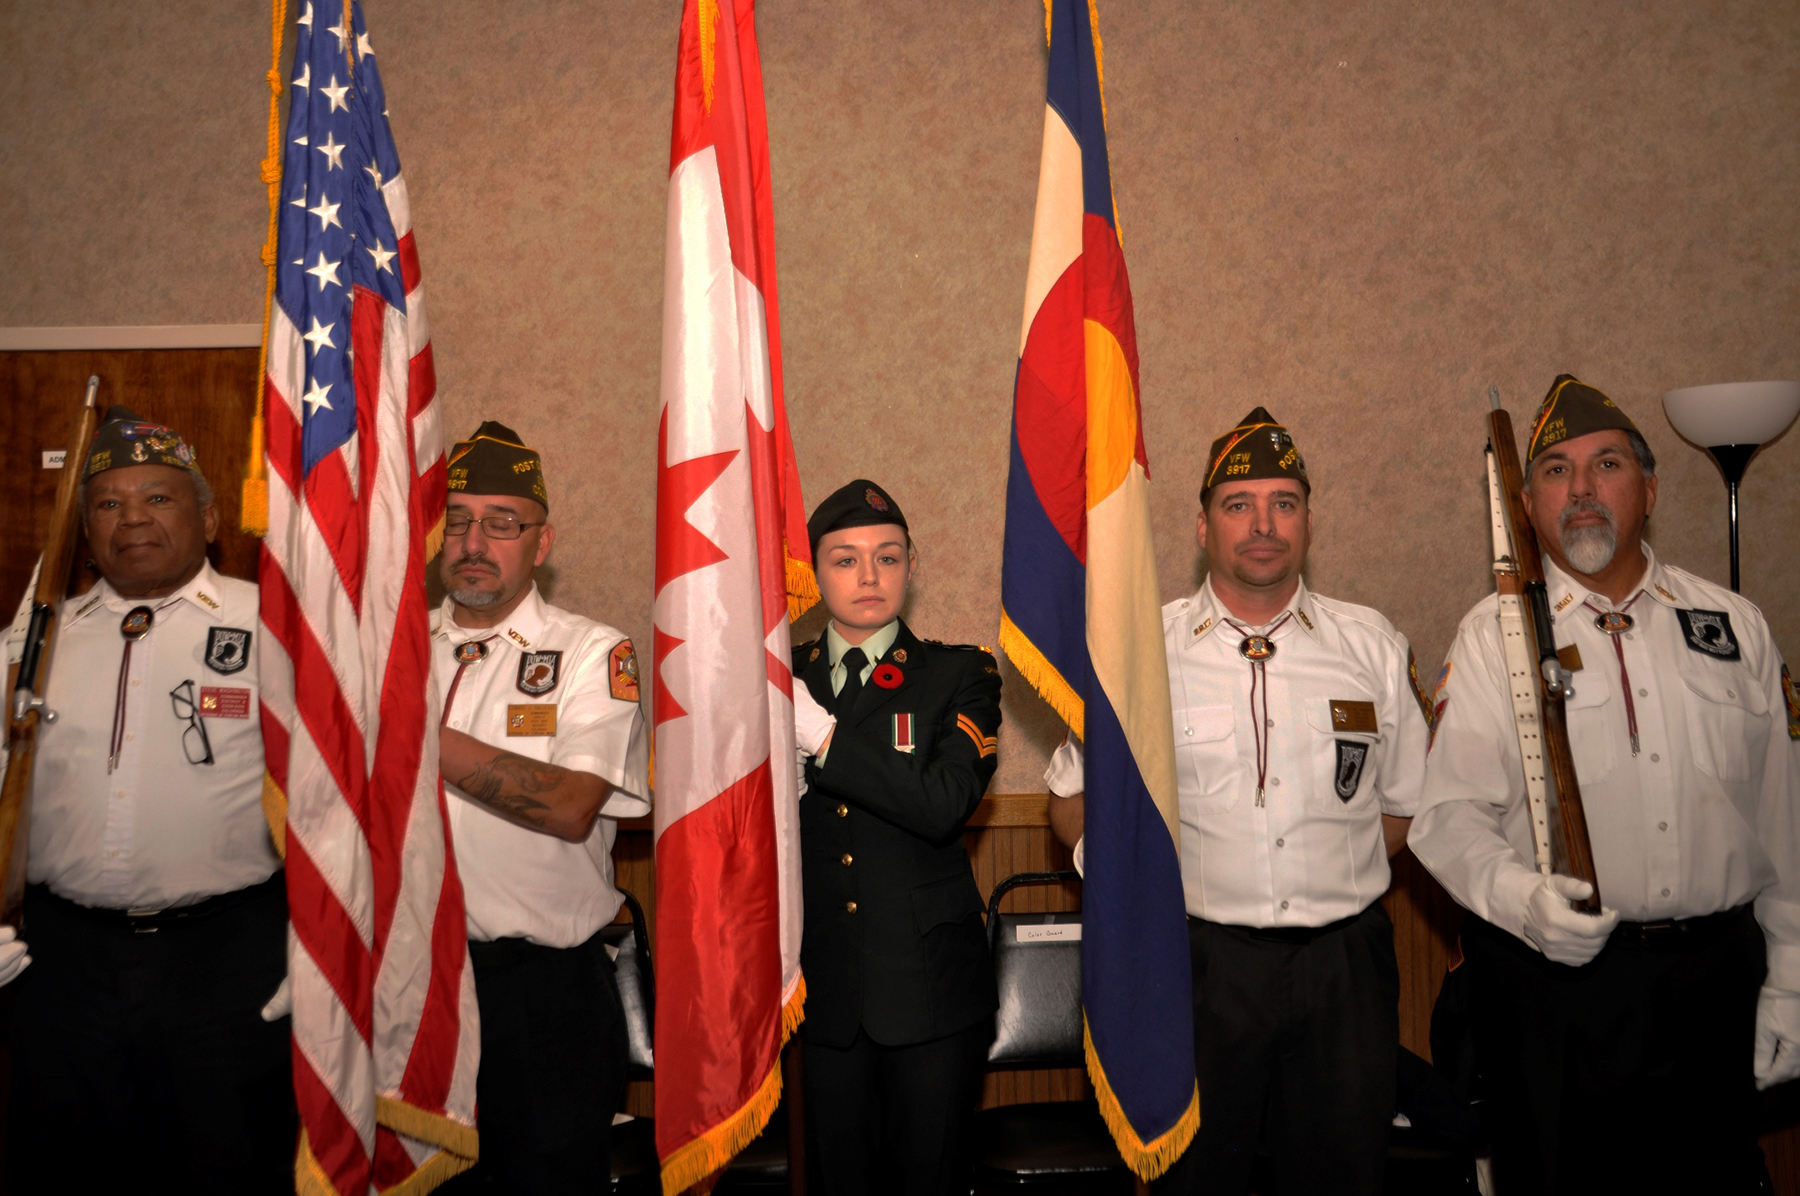 In Colorado Springs, Colorado, the North American Aerospace Defense Command (NORAD) colour party participates in the combined Remembrance Day and Veterans Day C\ceremony held on November 11, 2016. NORAD is the bi-national Canadian and American command that provides maritime warning, aerospace warning and aerospace control for Canada and the United States. PHOTO: Master Corporal Lois Gouthro